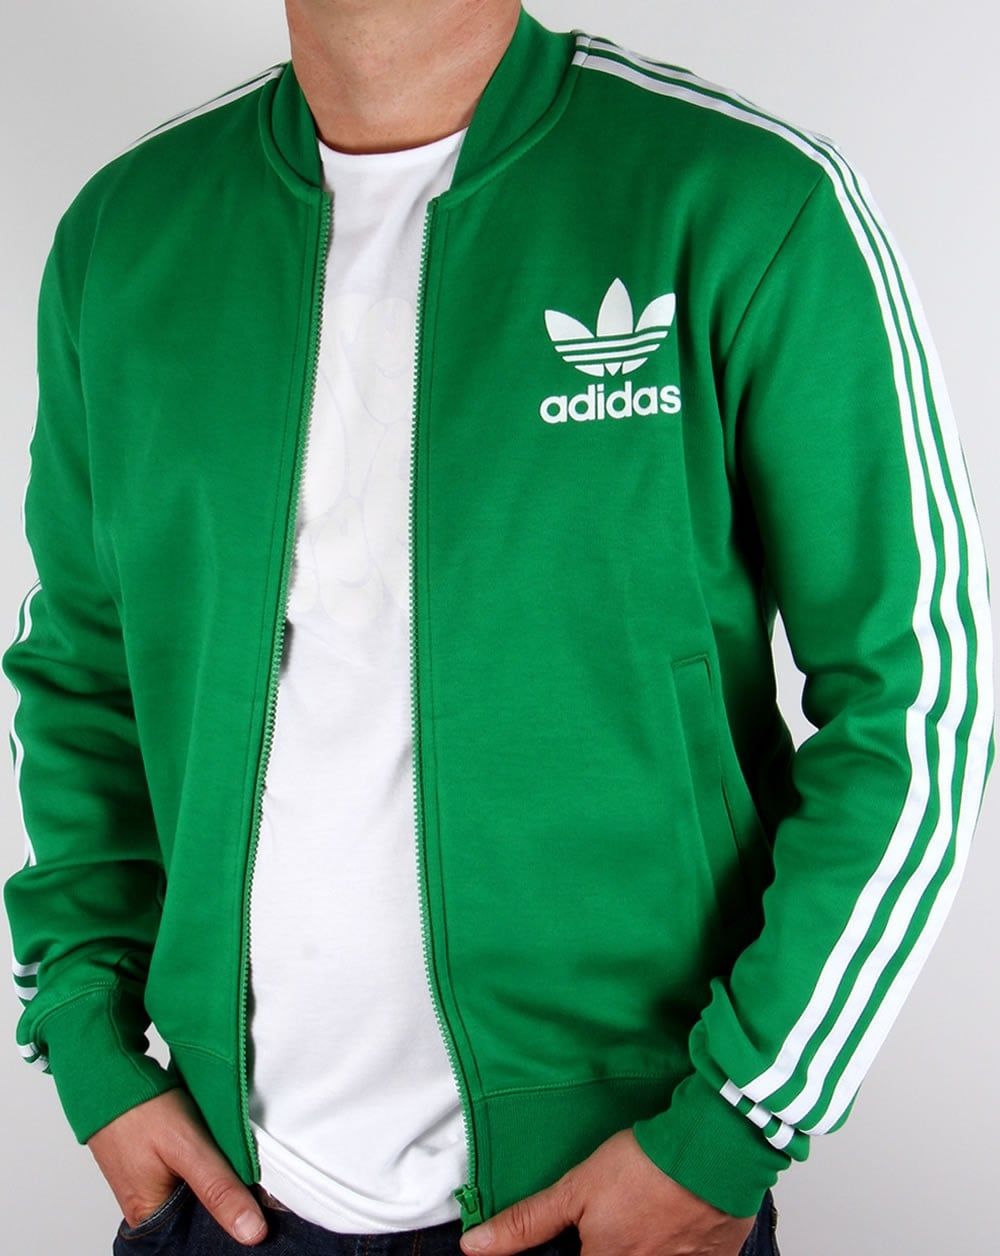 c8928d6d9c83 Adidas Originals Superstar Track Top Green White